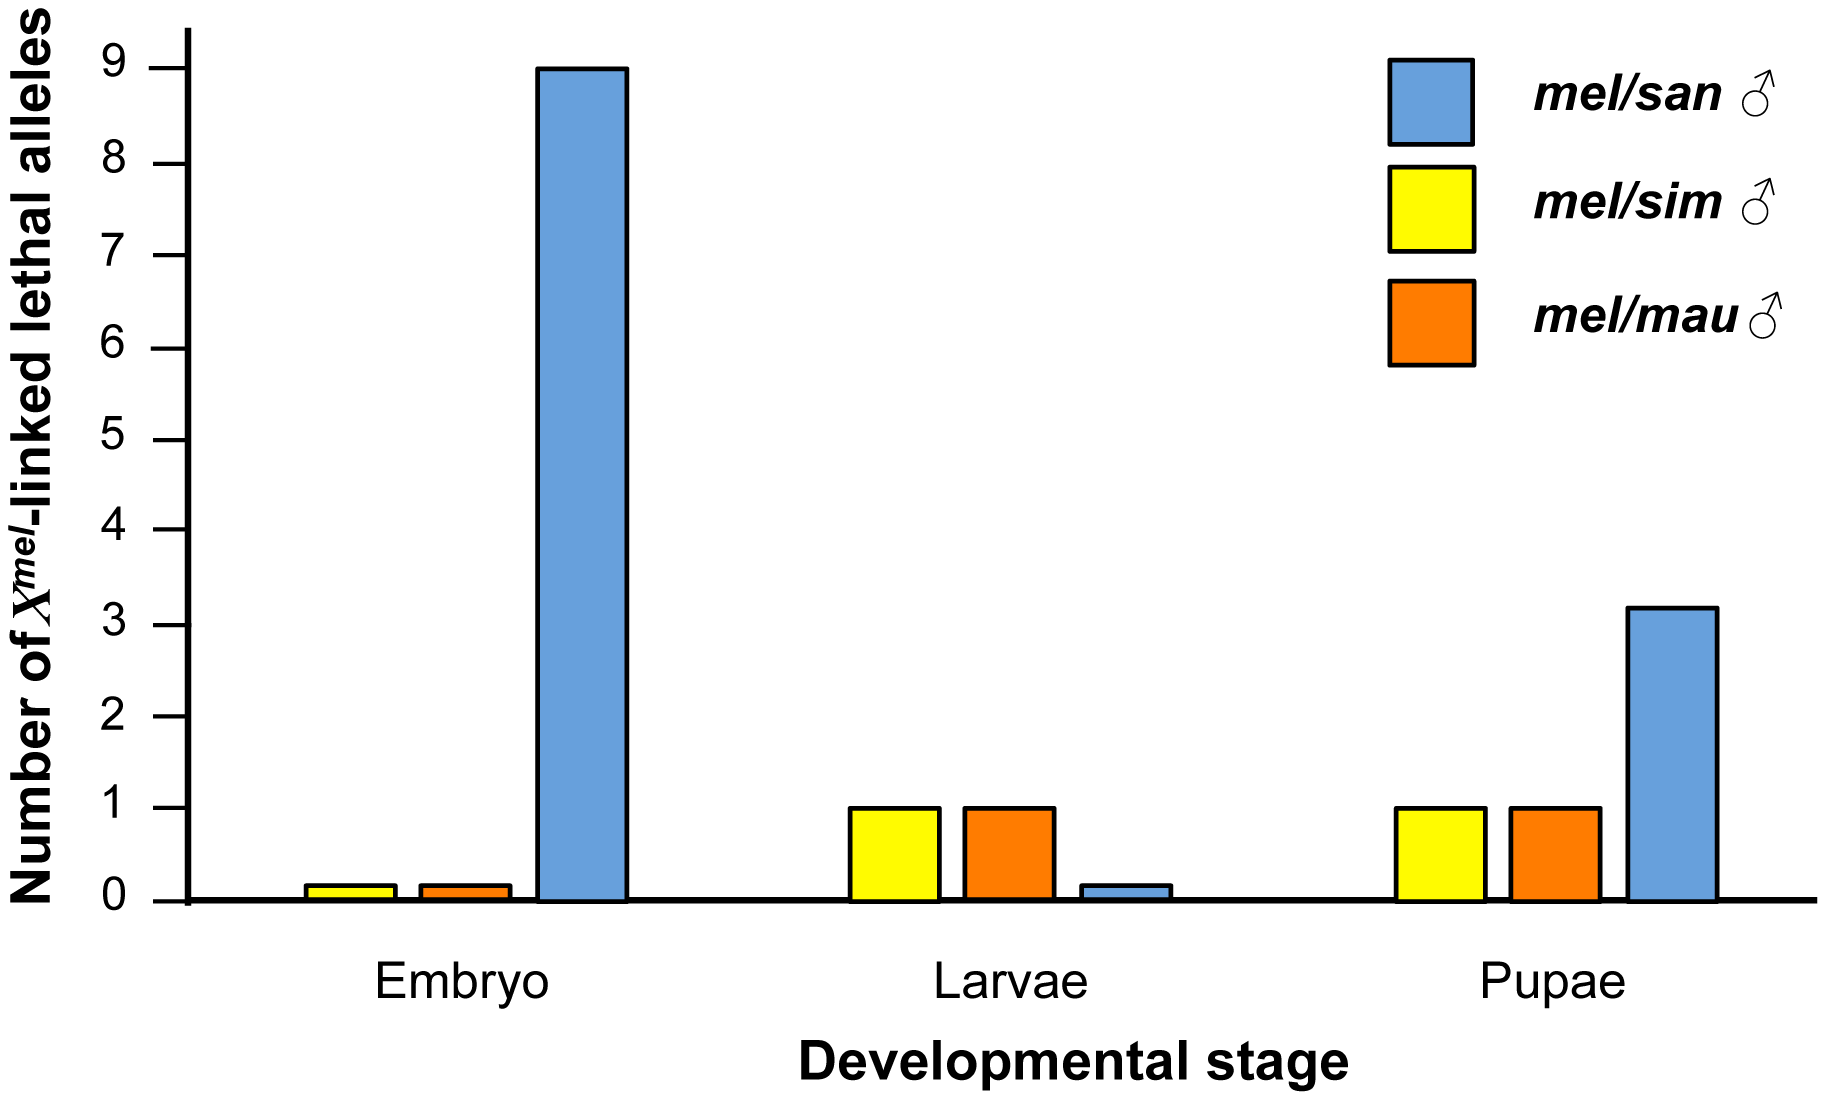 Some developmental stages are more prone to show hybrid inviability than others in <i>mel/san</i> hybrids.